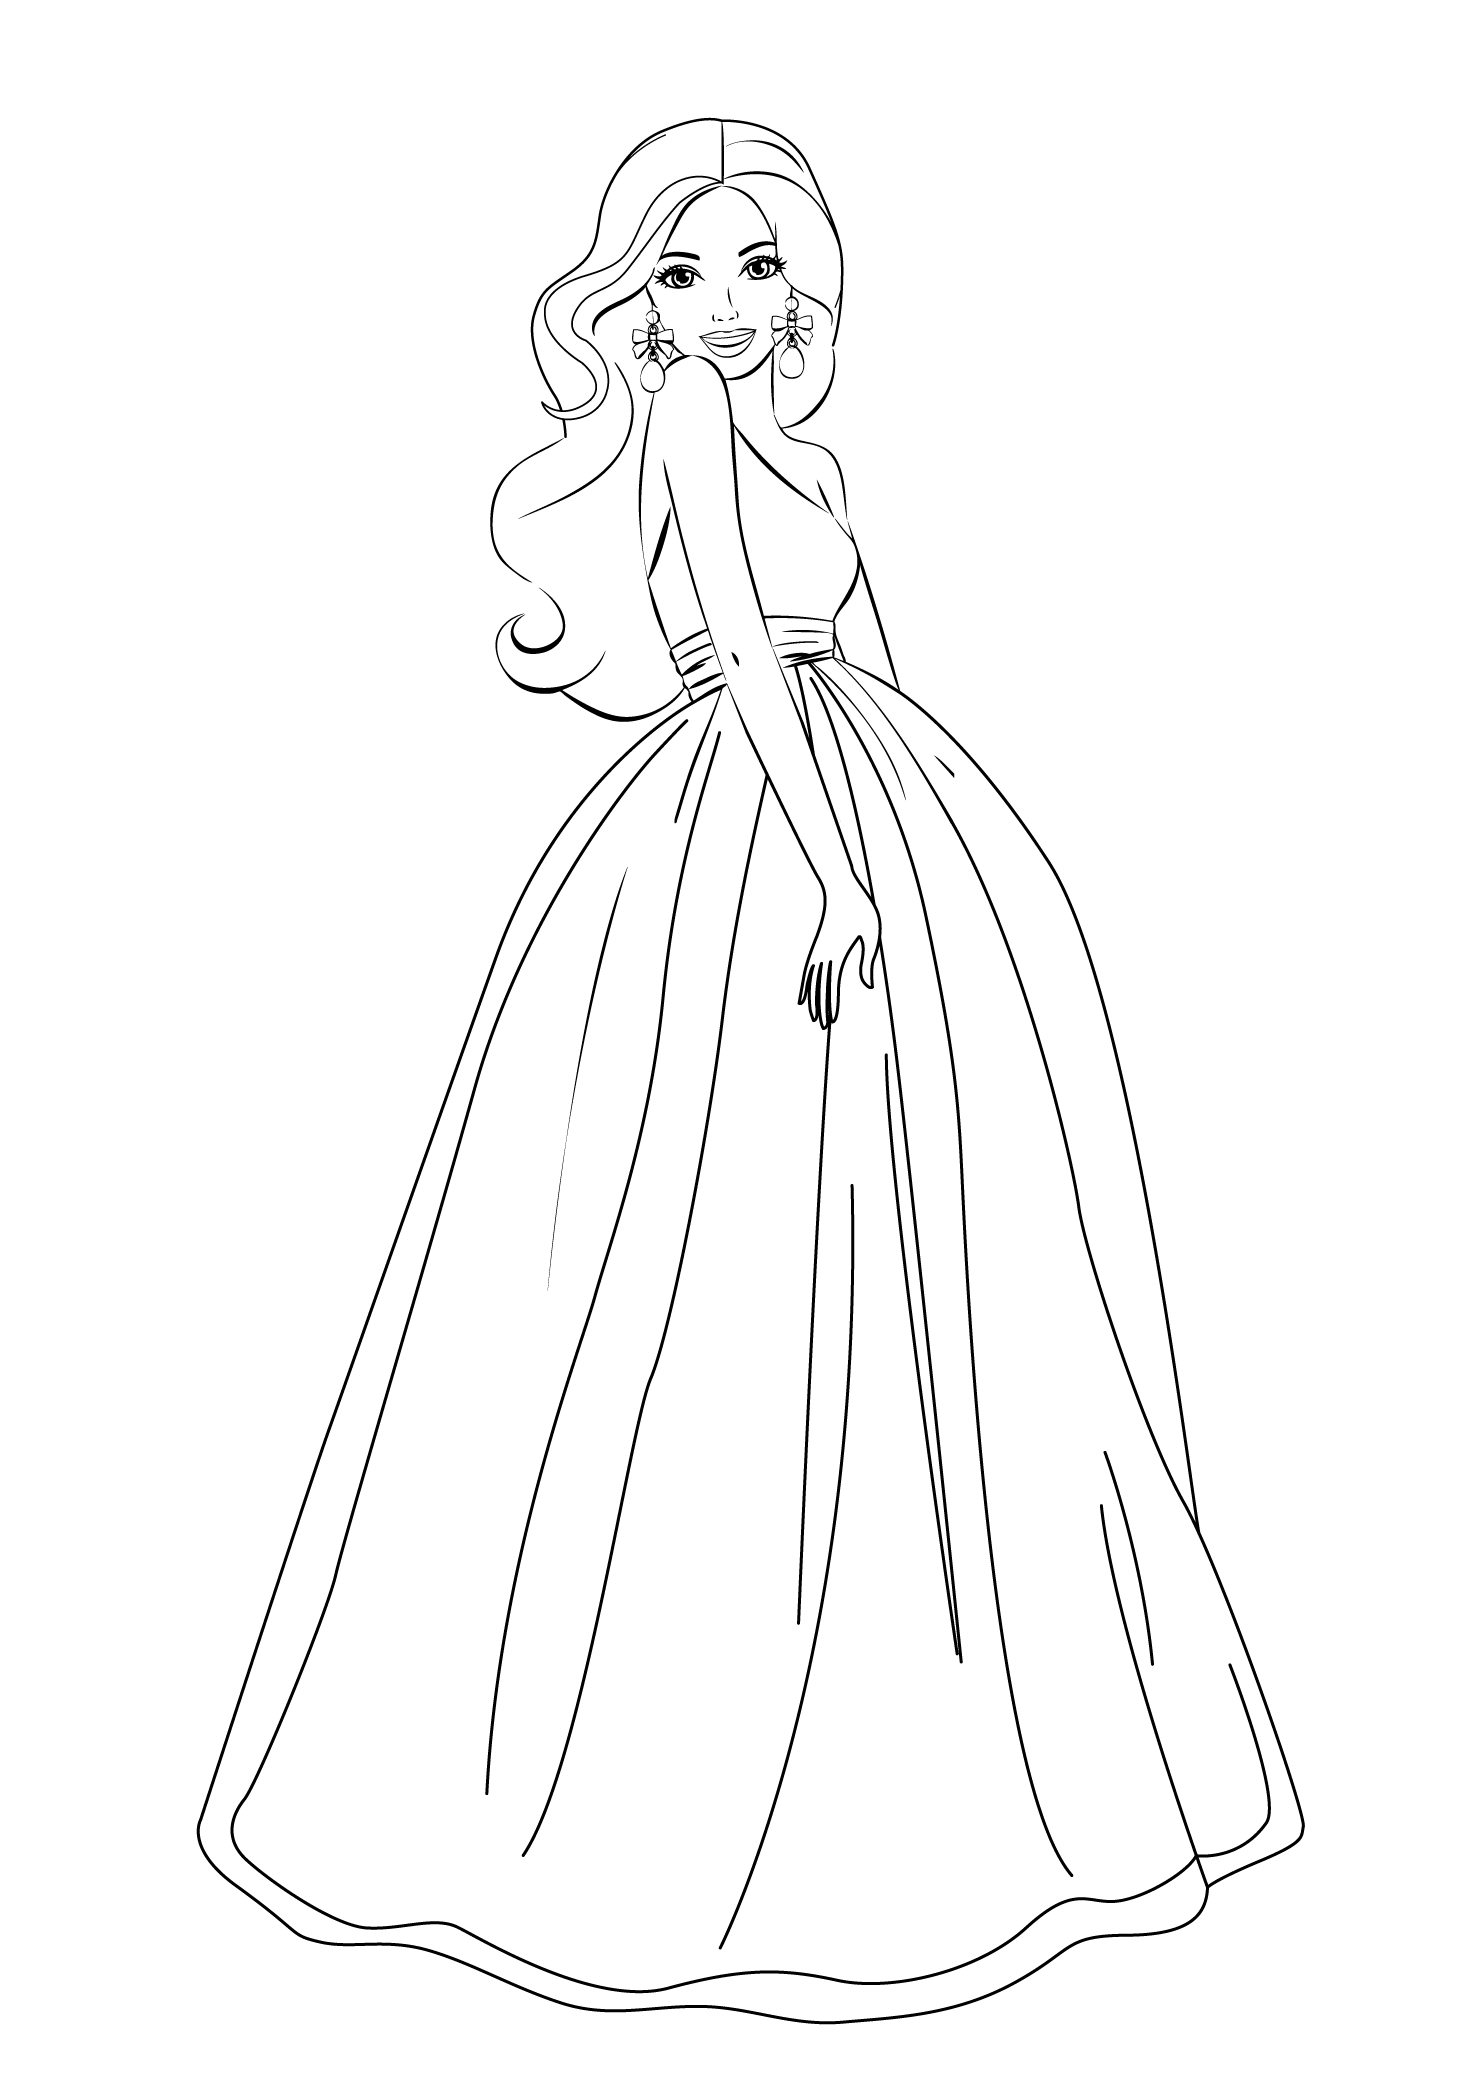 Barbie Coloring Pages For Girls Free Printable Princesa Para Pintar Barbie Para Colorear Dibujos Para Colorear Gratis